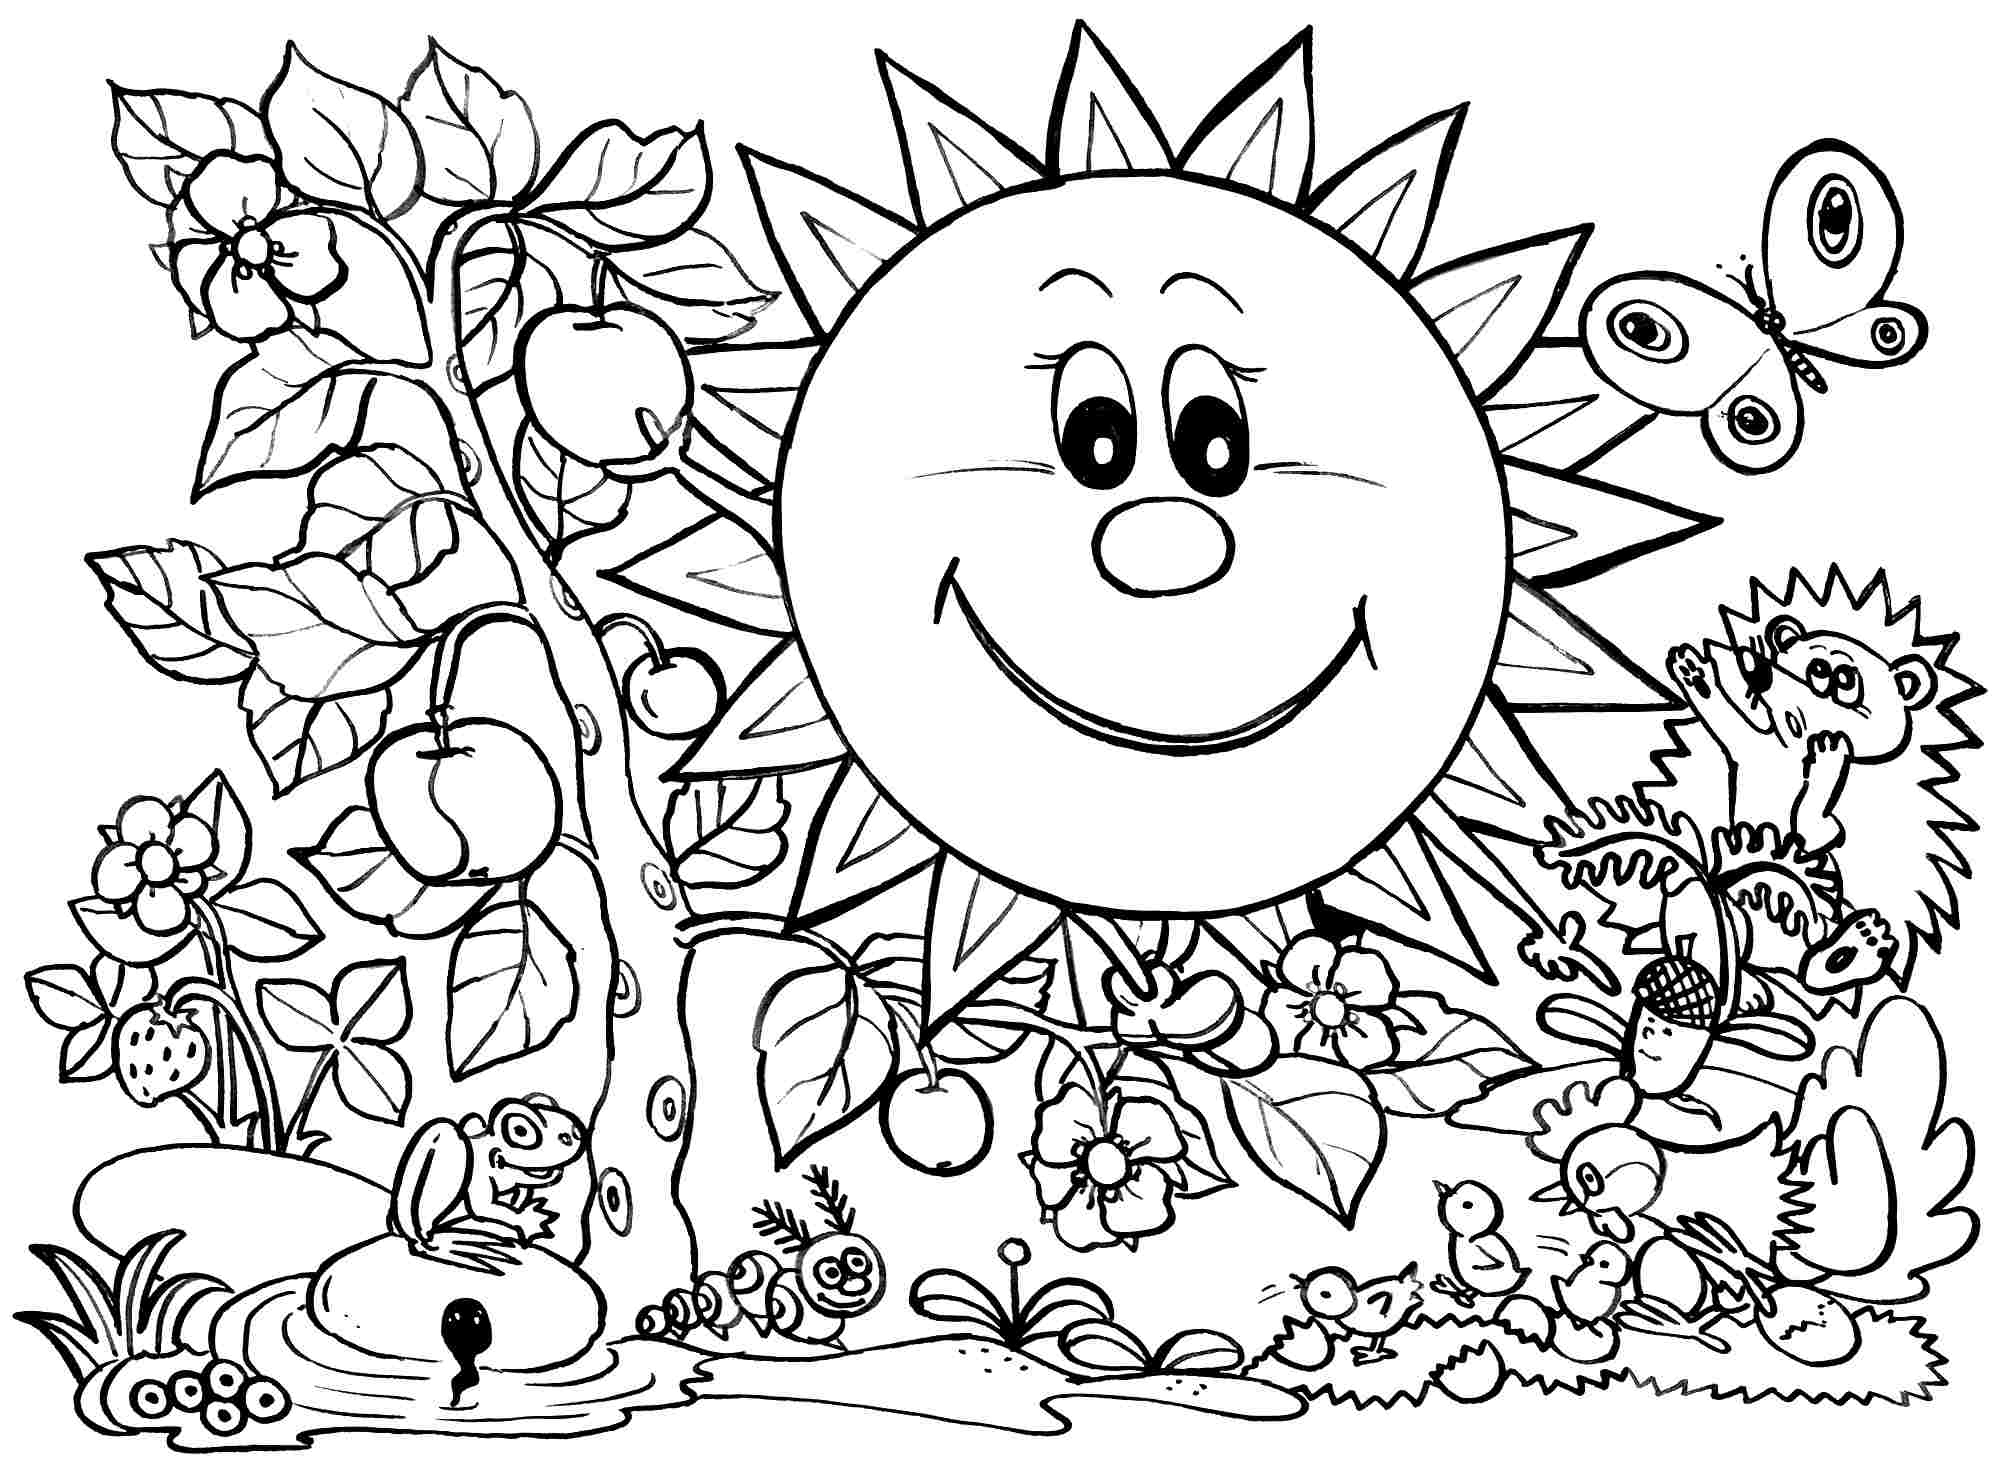 Spring Coloring Pages For Kids, Free Printable   Coloing-4Kids - Spring Coloring Sheets Free Printable